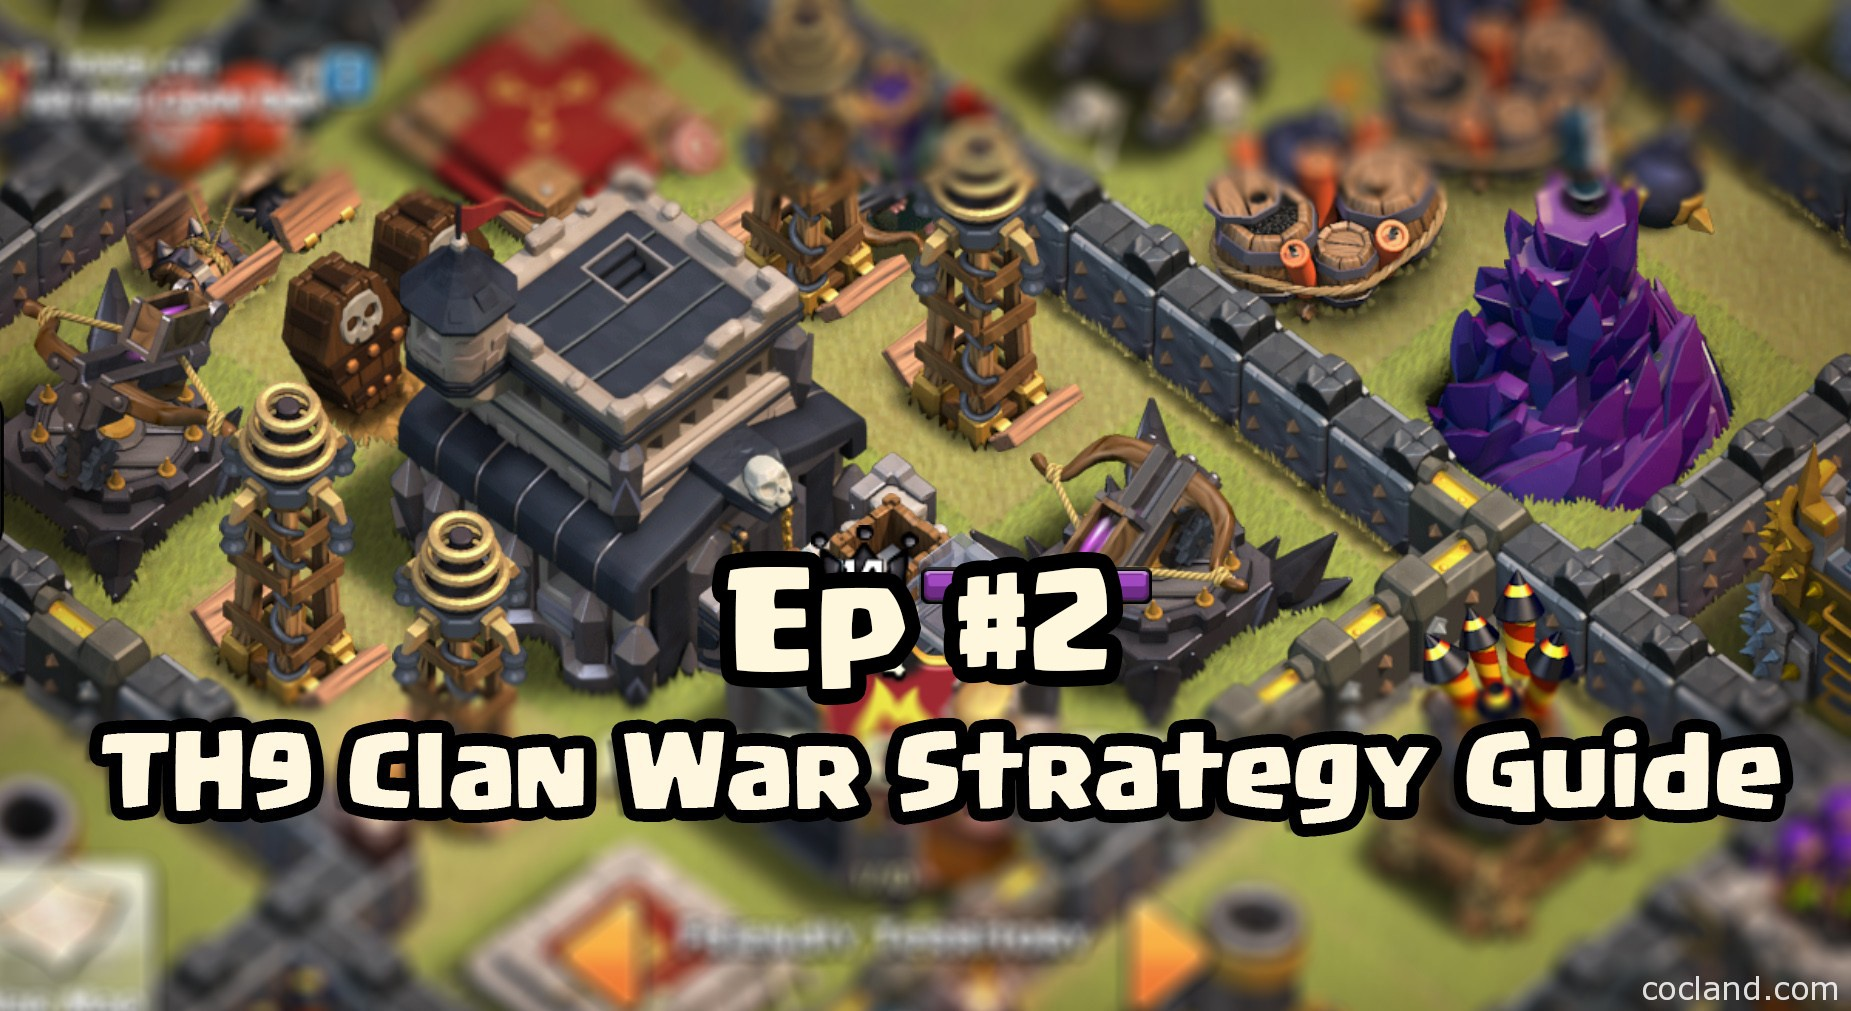 TH9 Clan War Strategy Guide  Episode Two